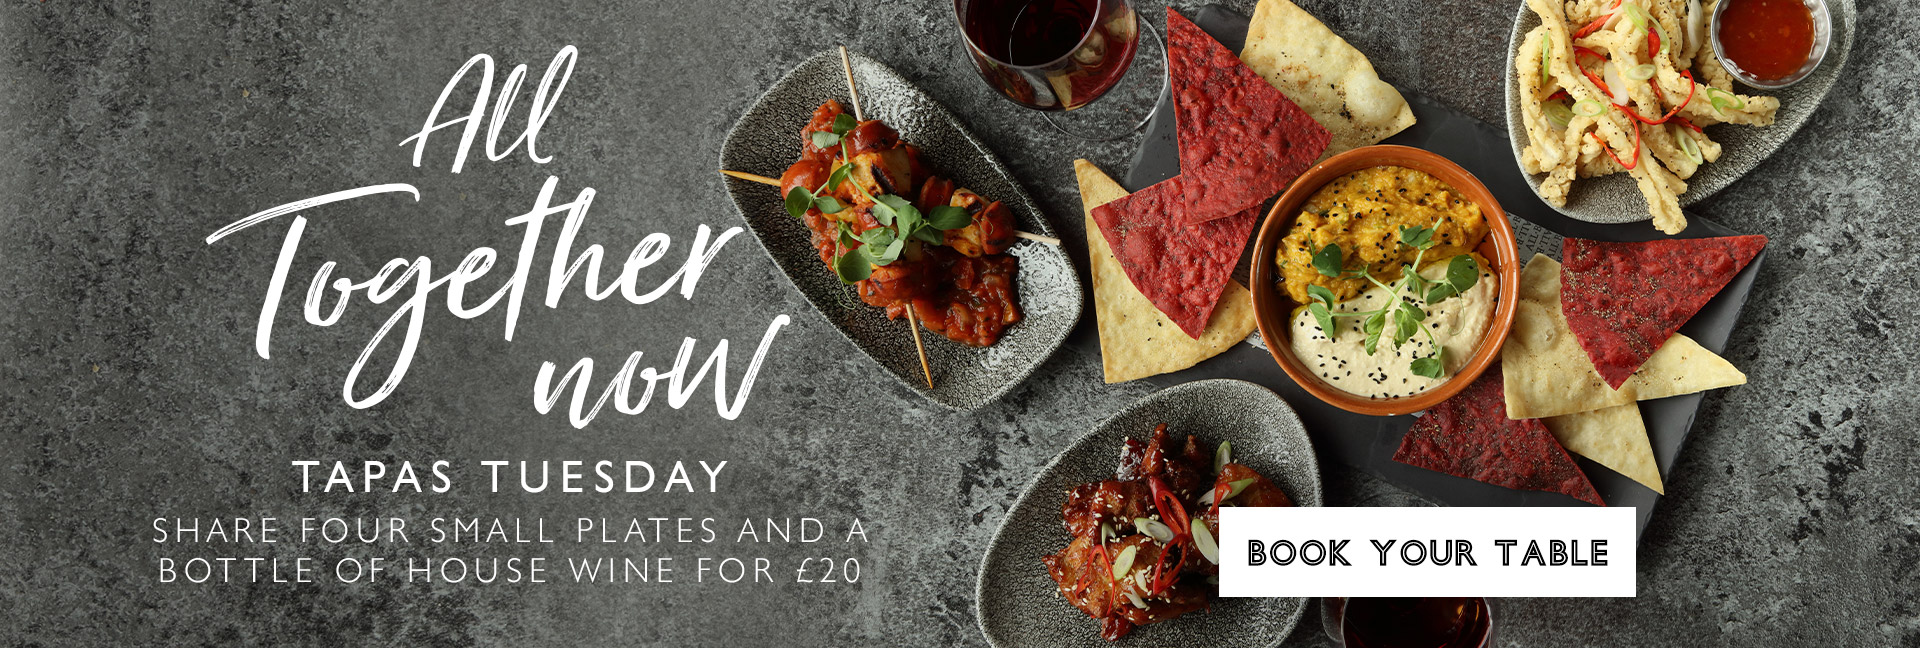 Tapas Tuesday at All Bar One Tower of London - Book now